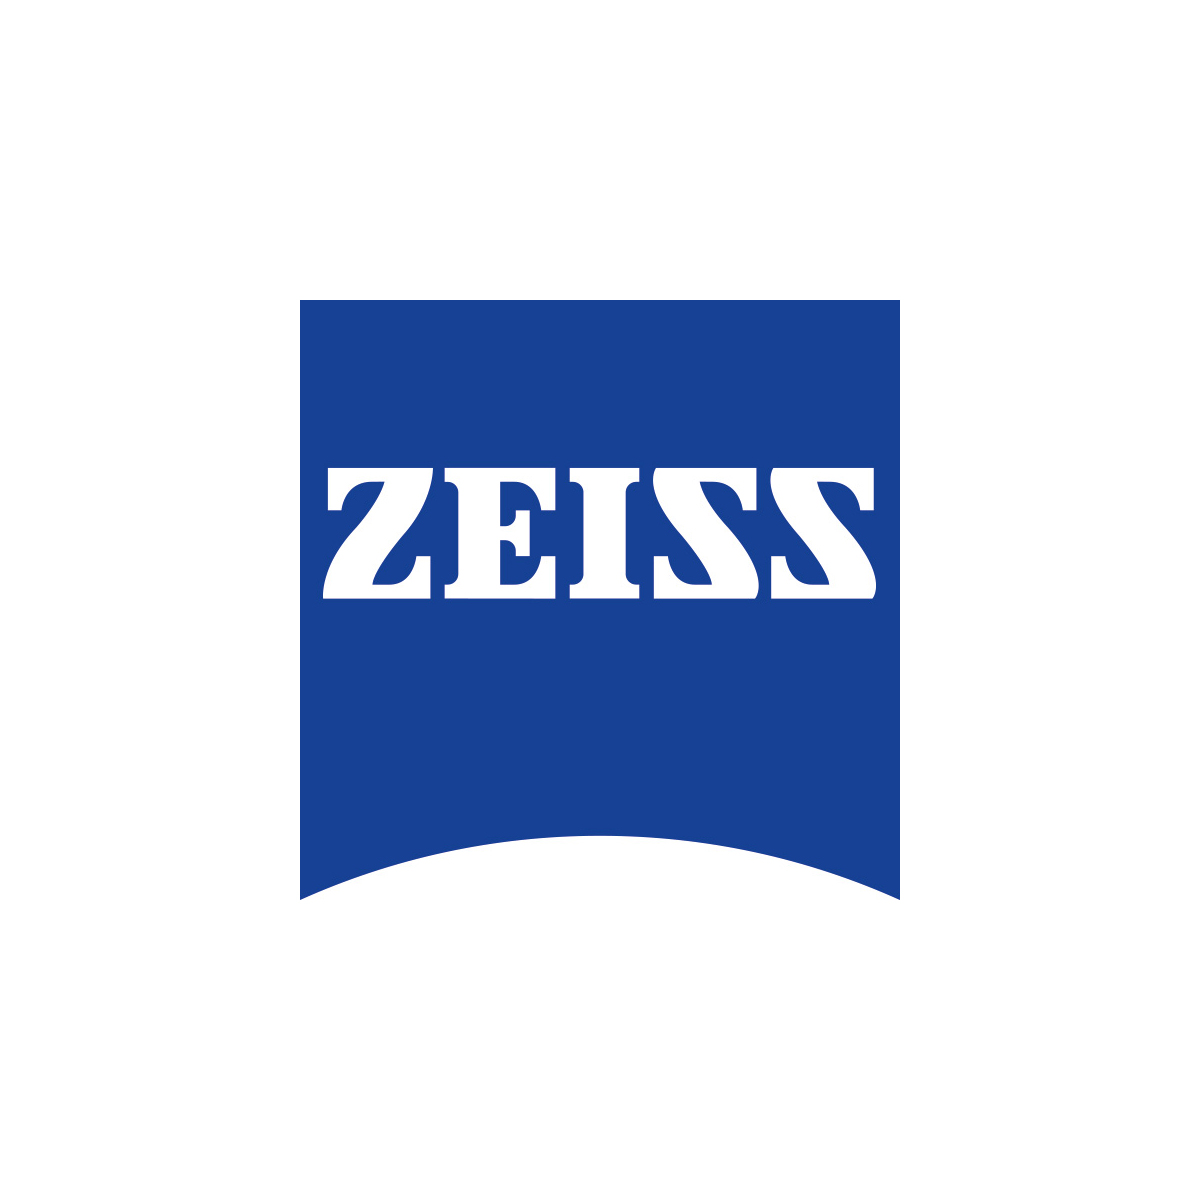 ZEISS : Leading the eyeglass industry for more than 100 years